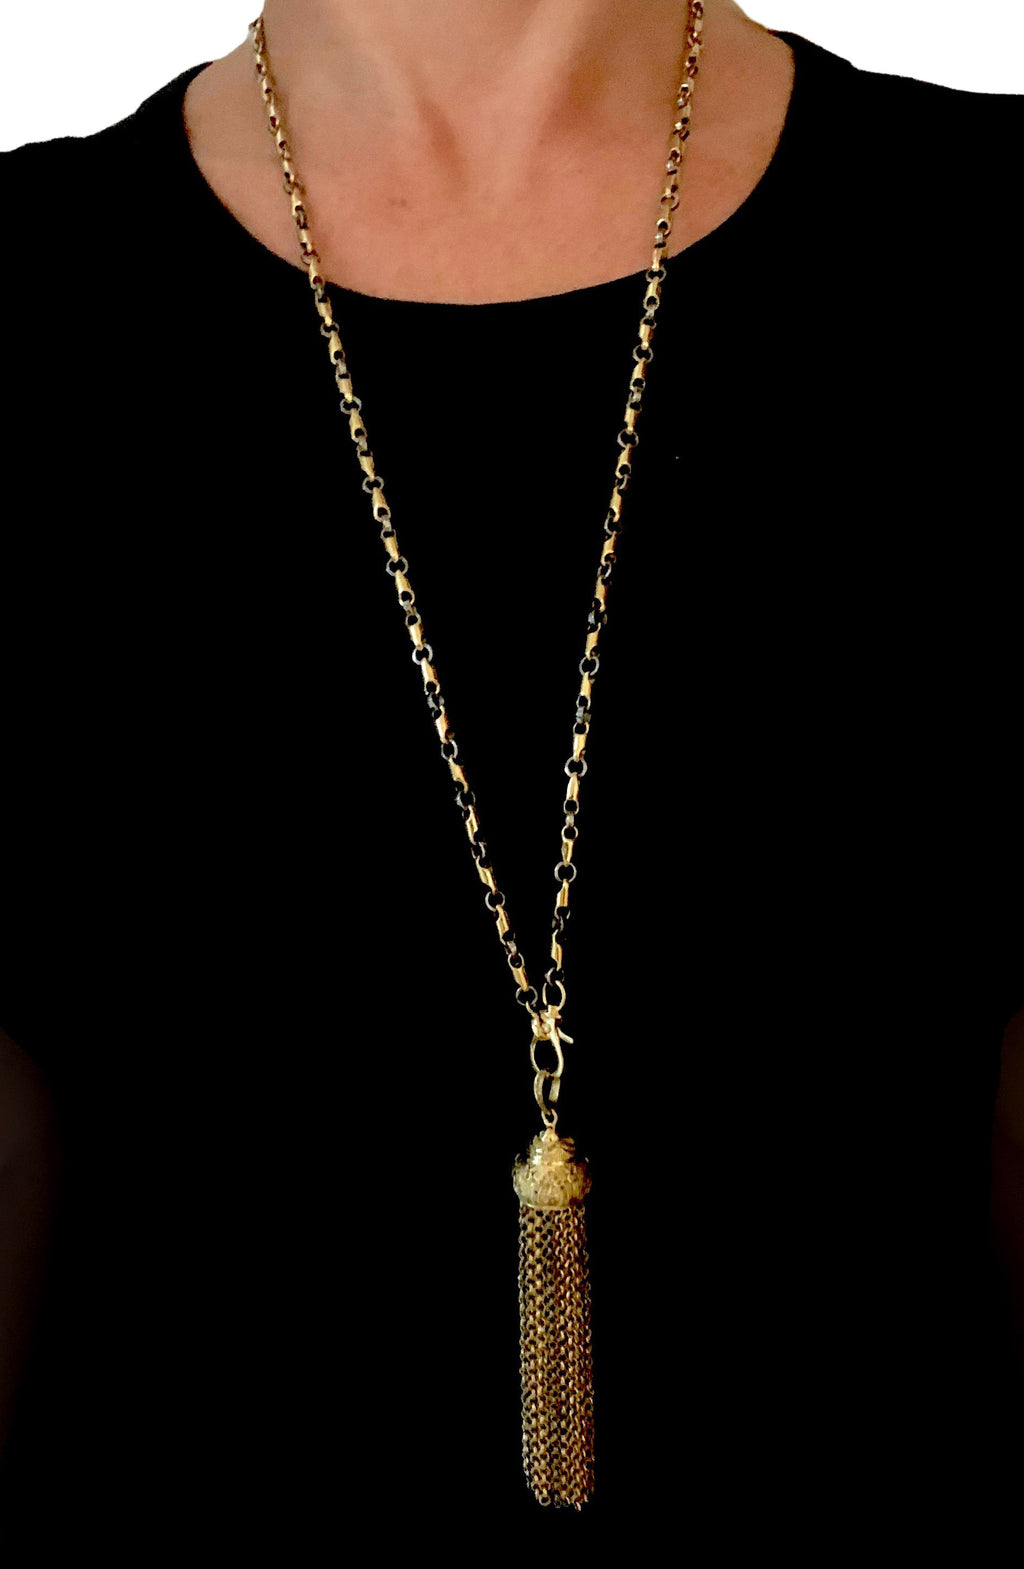 Pave Diamonds set in Brass with Brass and Sterling Silver Tassel